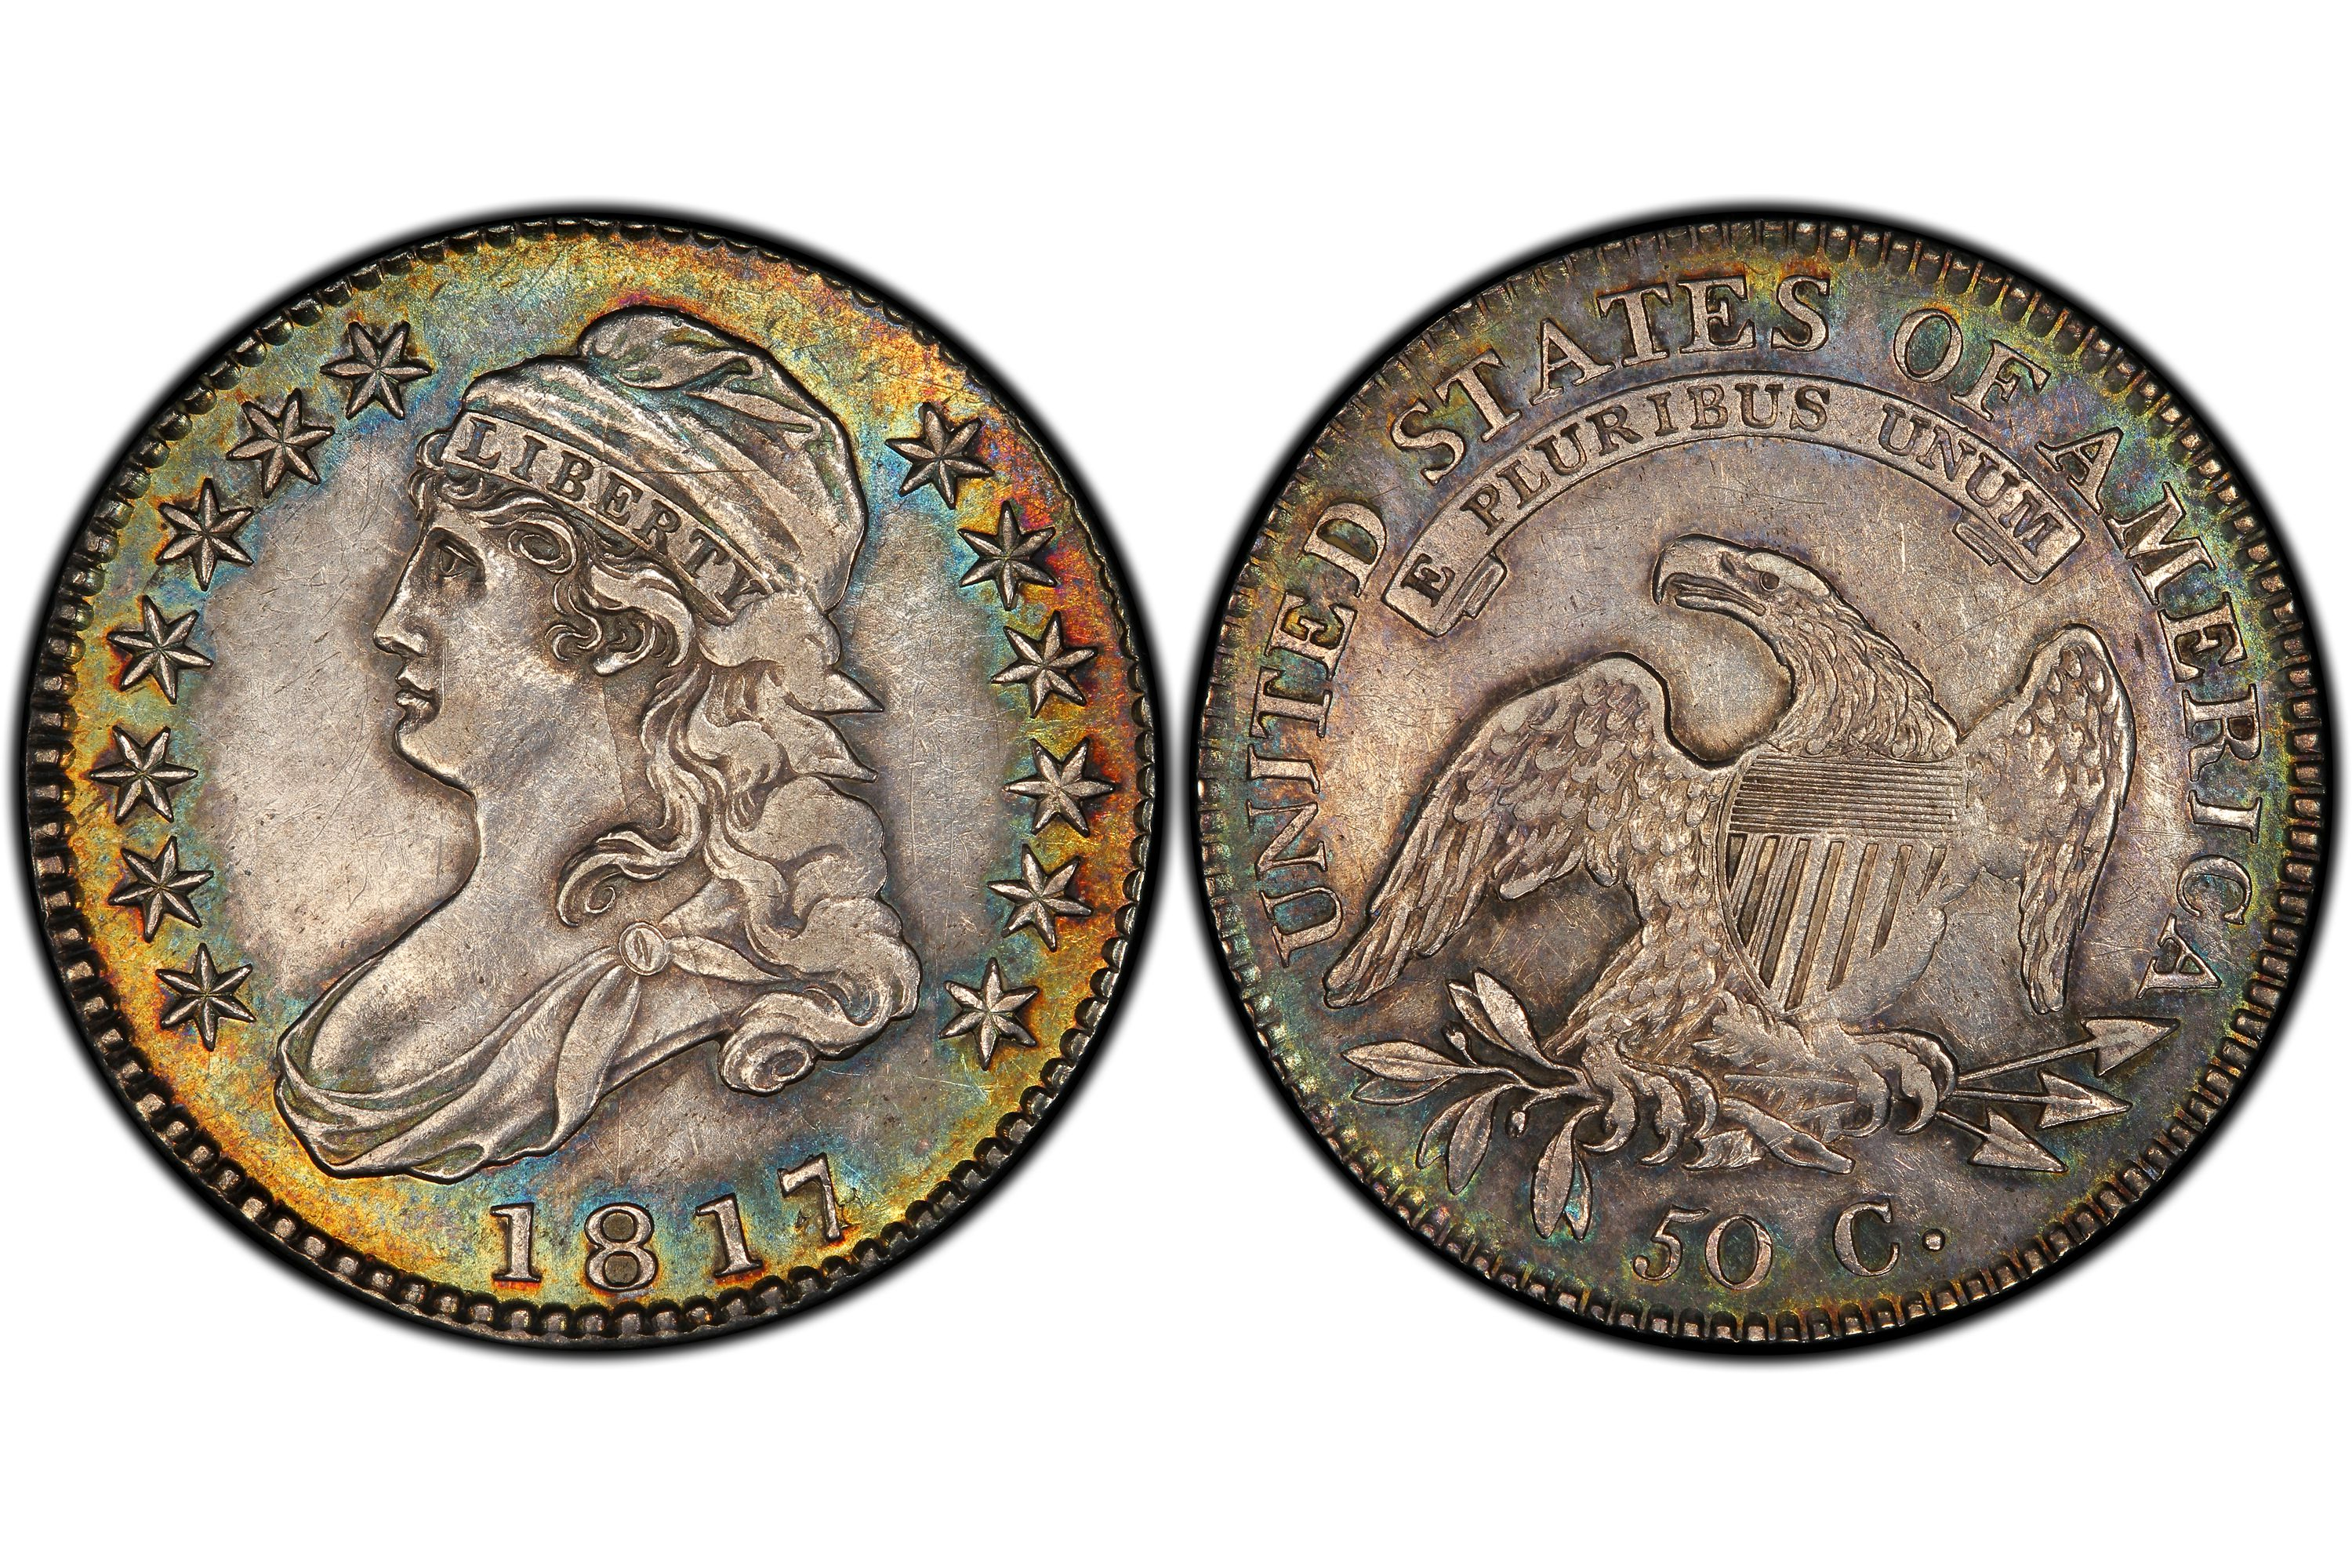 1817/4 Capped Bust Half Dollar Overdate variety graded AU-50 by PCGS